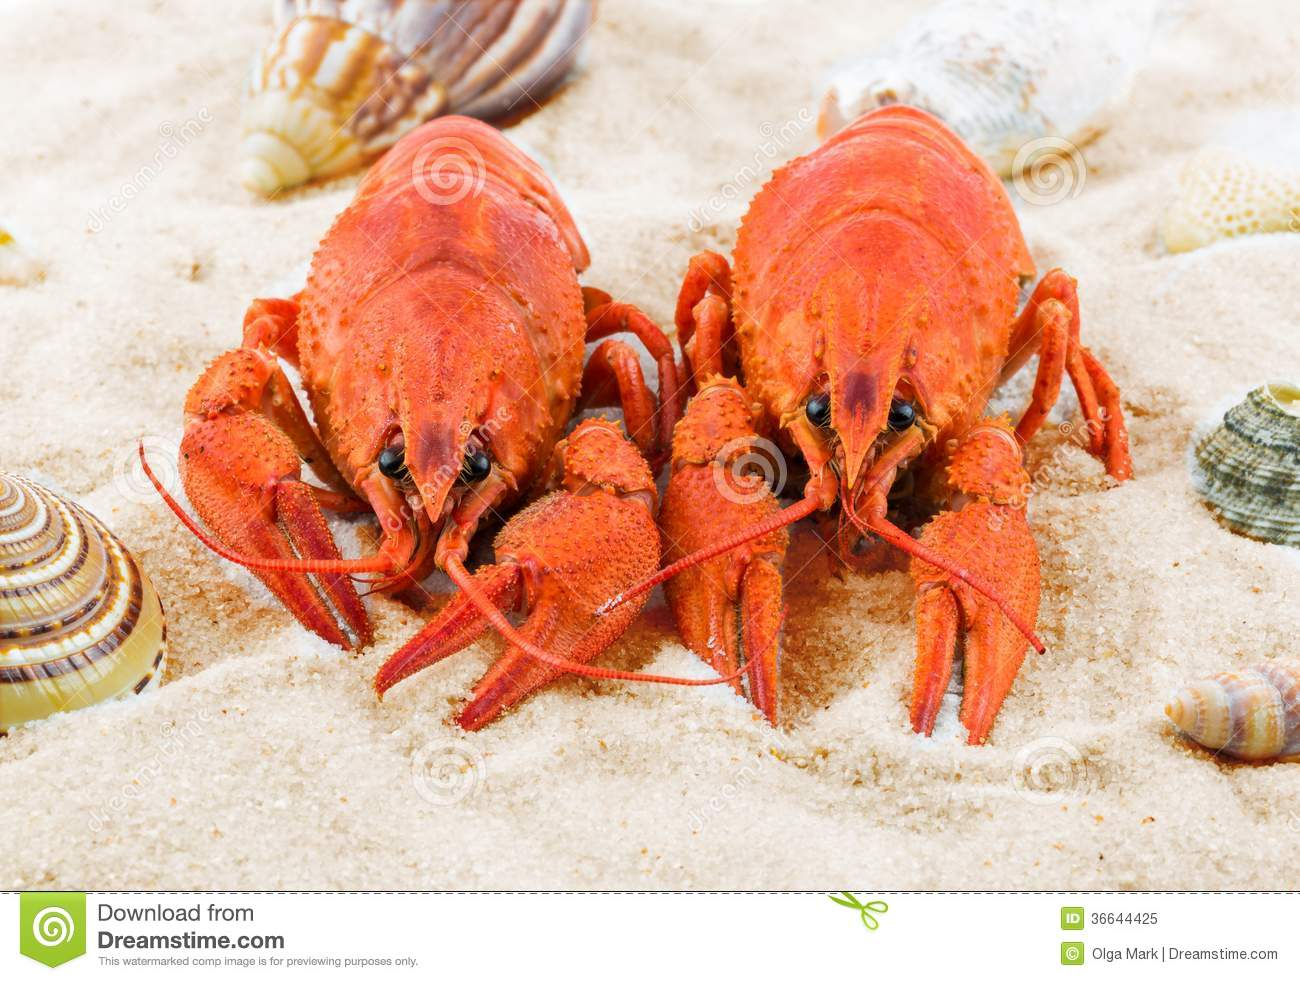 Two Red Lobsters On A Sandy Beach Stock Image - Image of beer, bake: 36644425